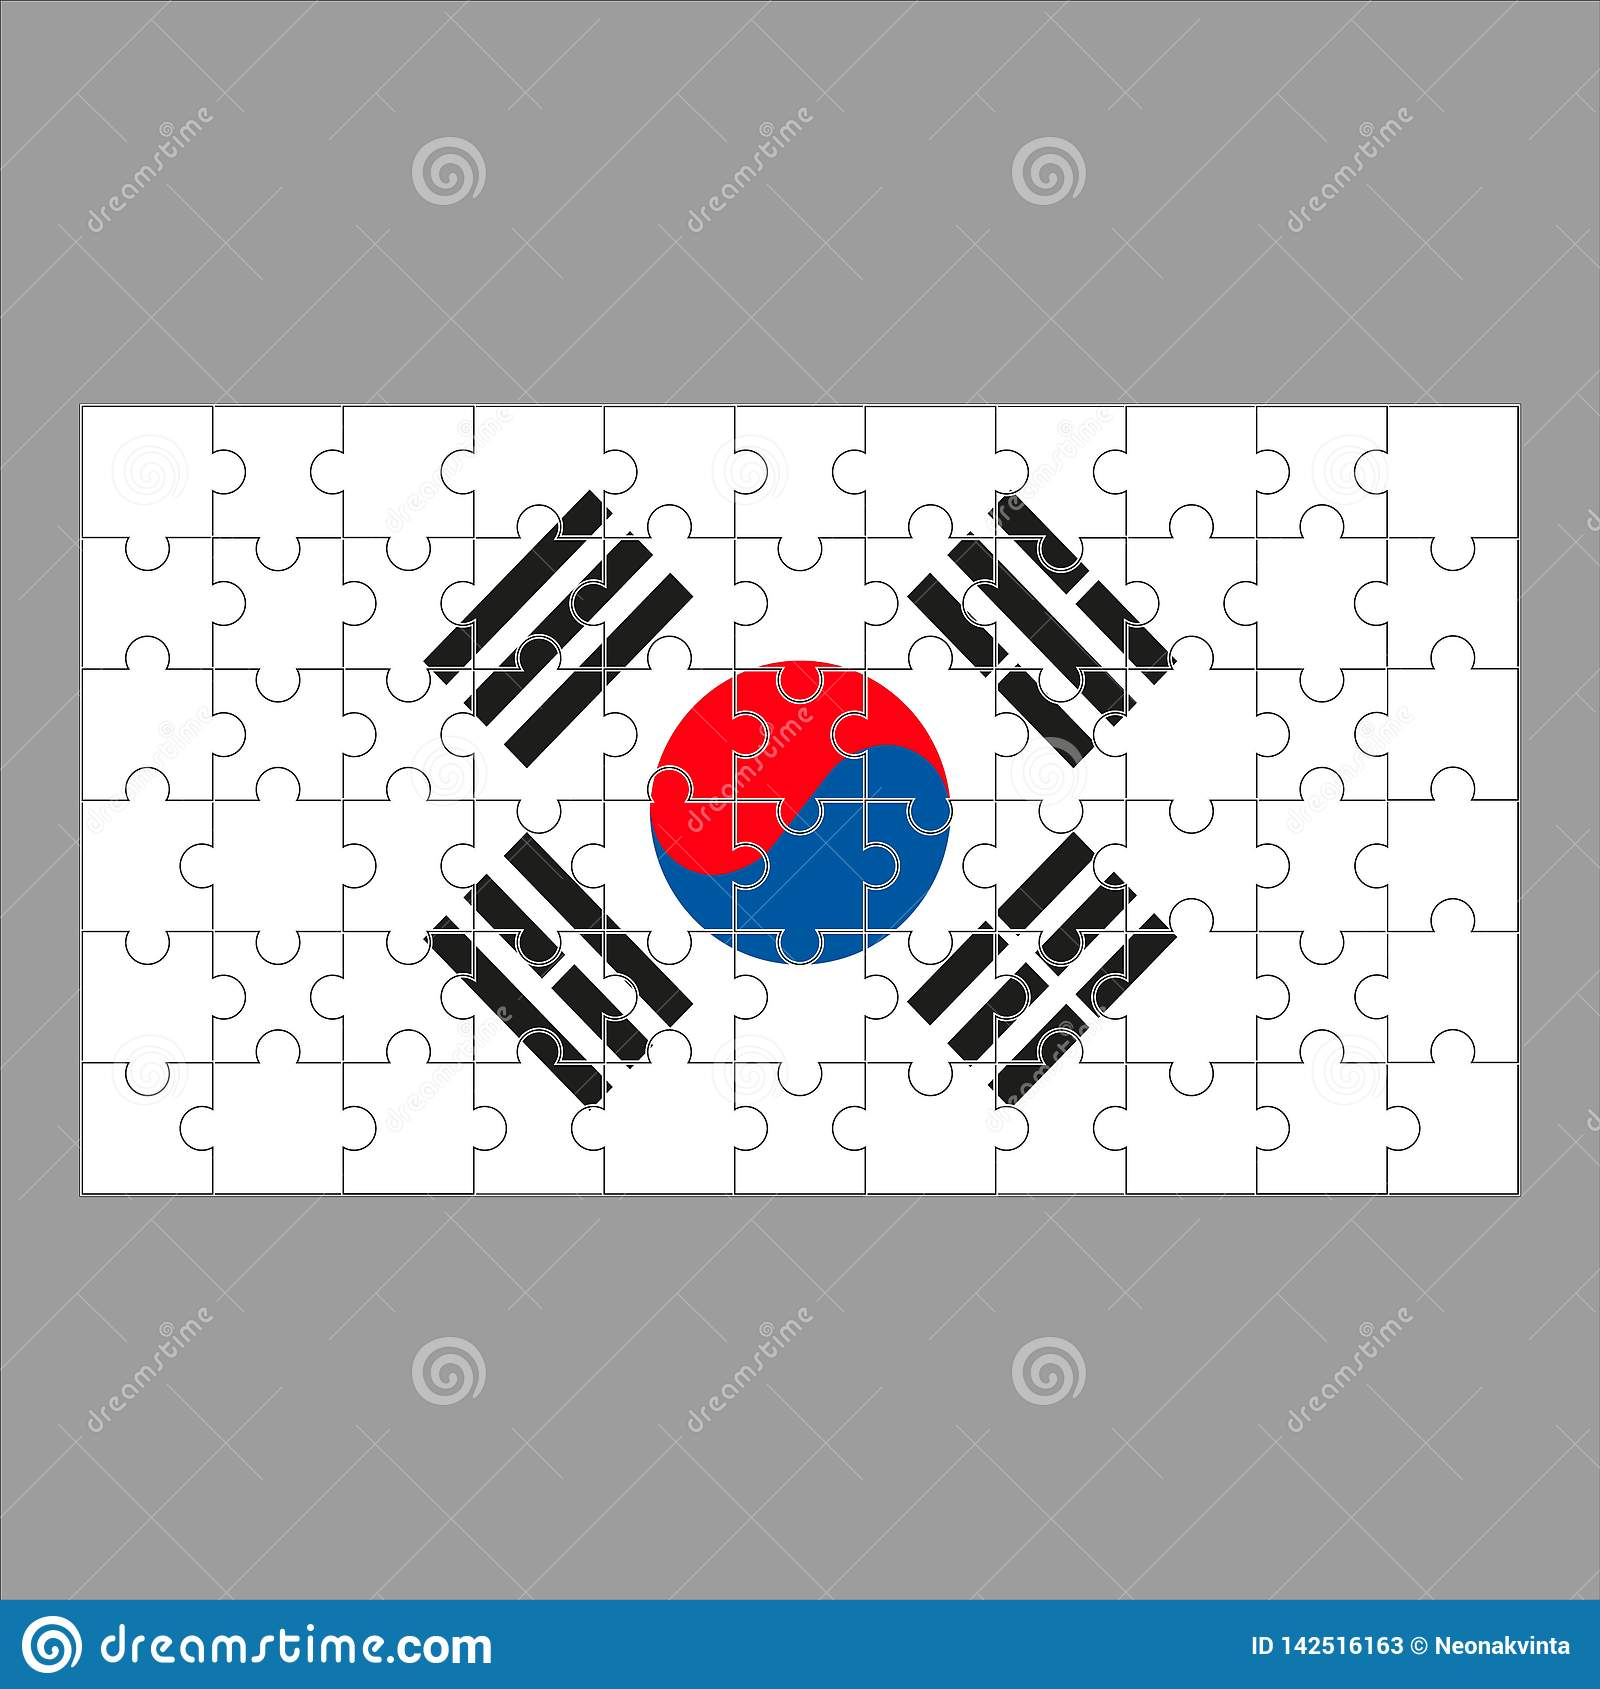 Flag Korea from puzzles on a gray background.